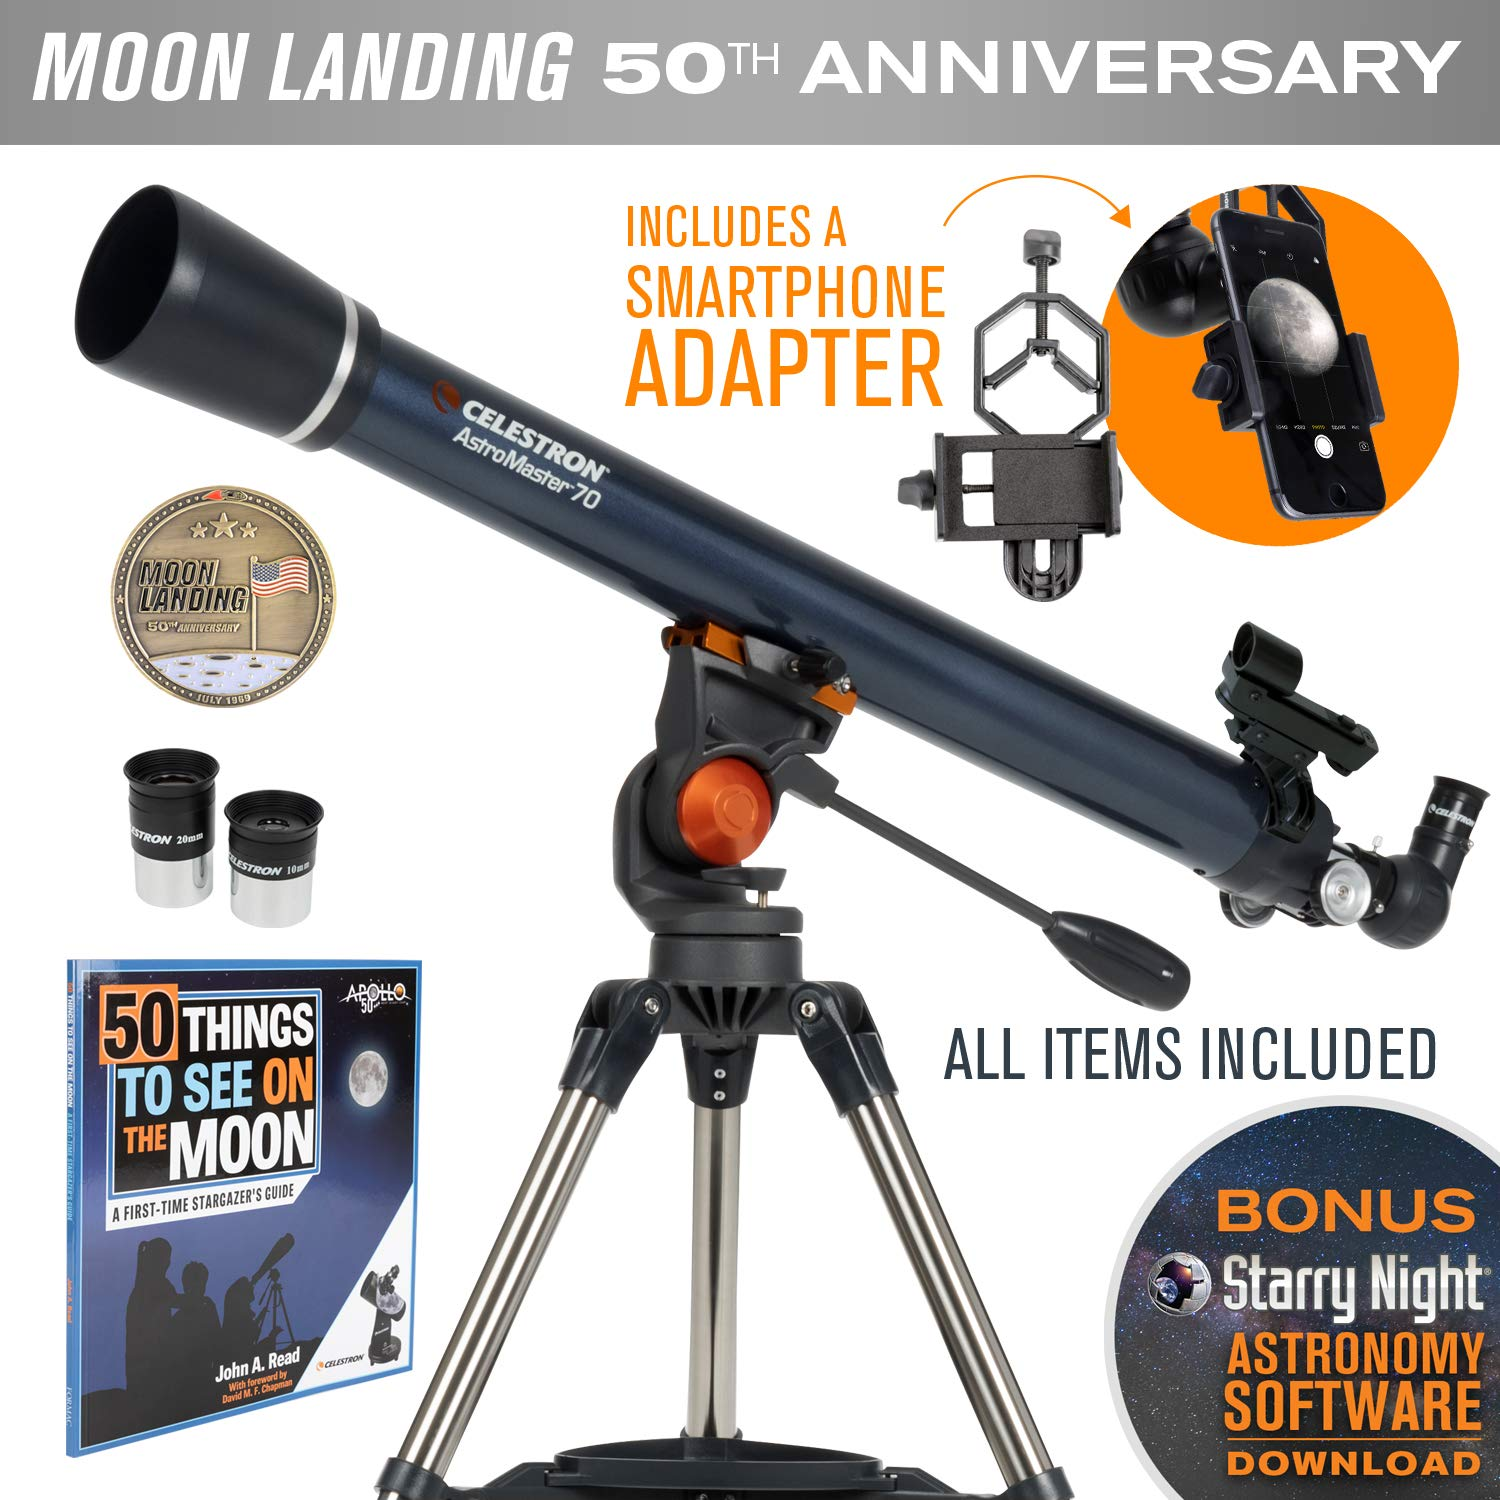 Celestron AstroMaster 70AZ Refractor Telescope with Smartphone Adapter - Limited Edition Apollo 11 50th Anniversary Bundle with Commemorative Coin and Book by Celestron